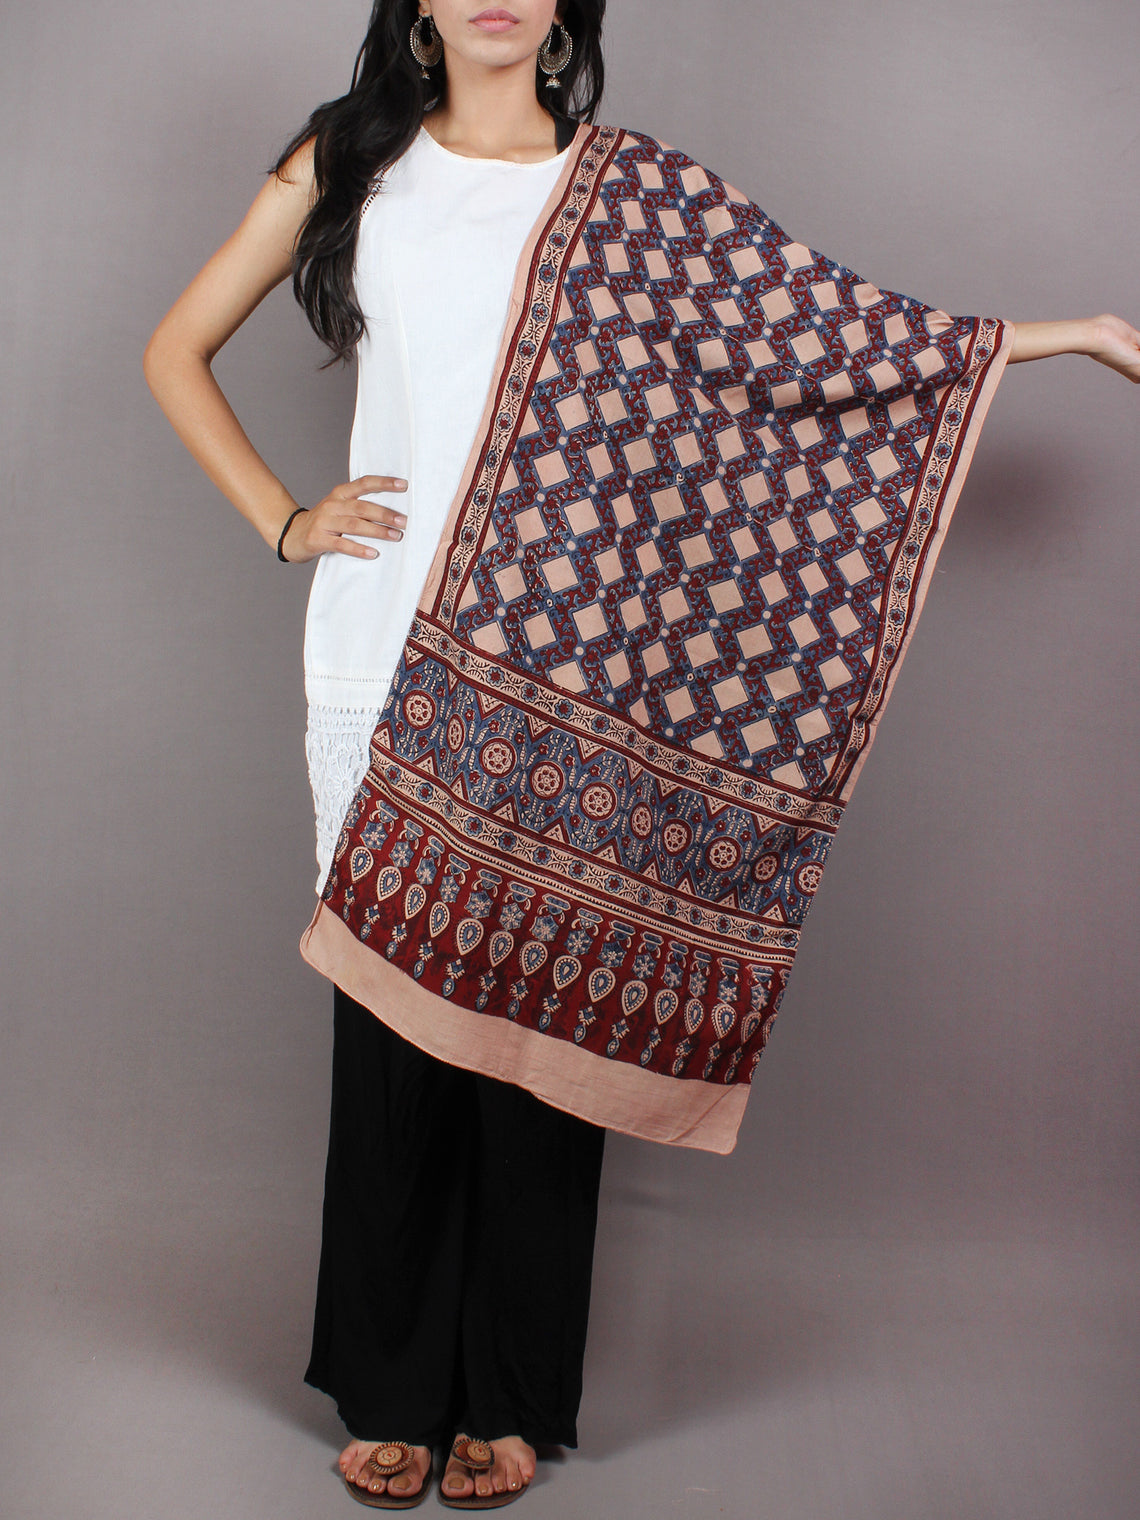 Salmon Pink Maroon Blue Mughal Nakashi Ajrakh Hand Block Printed Cotton Stole - S6317031